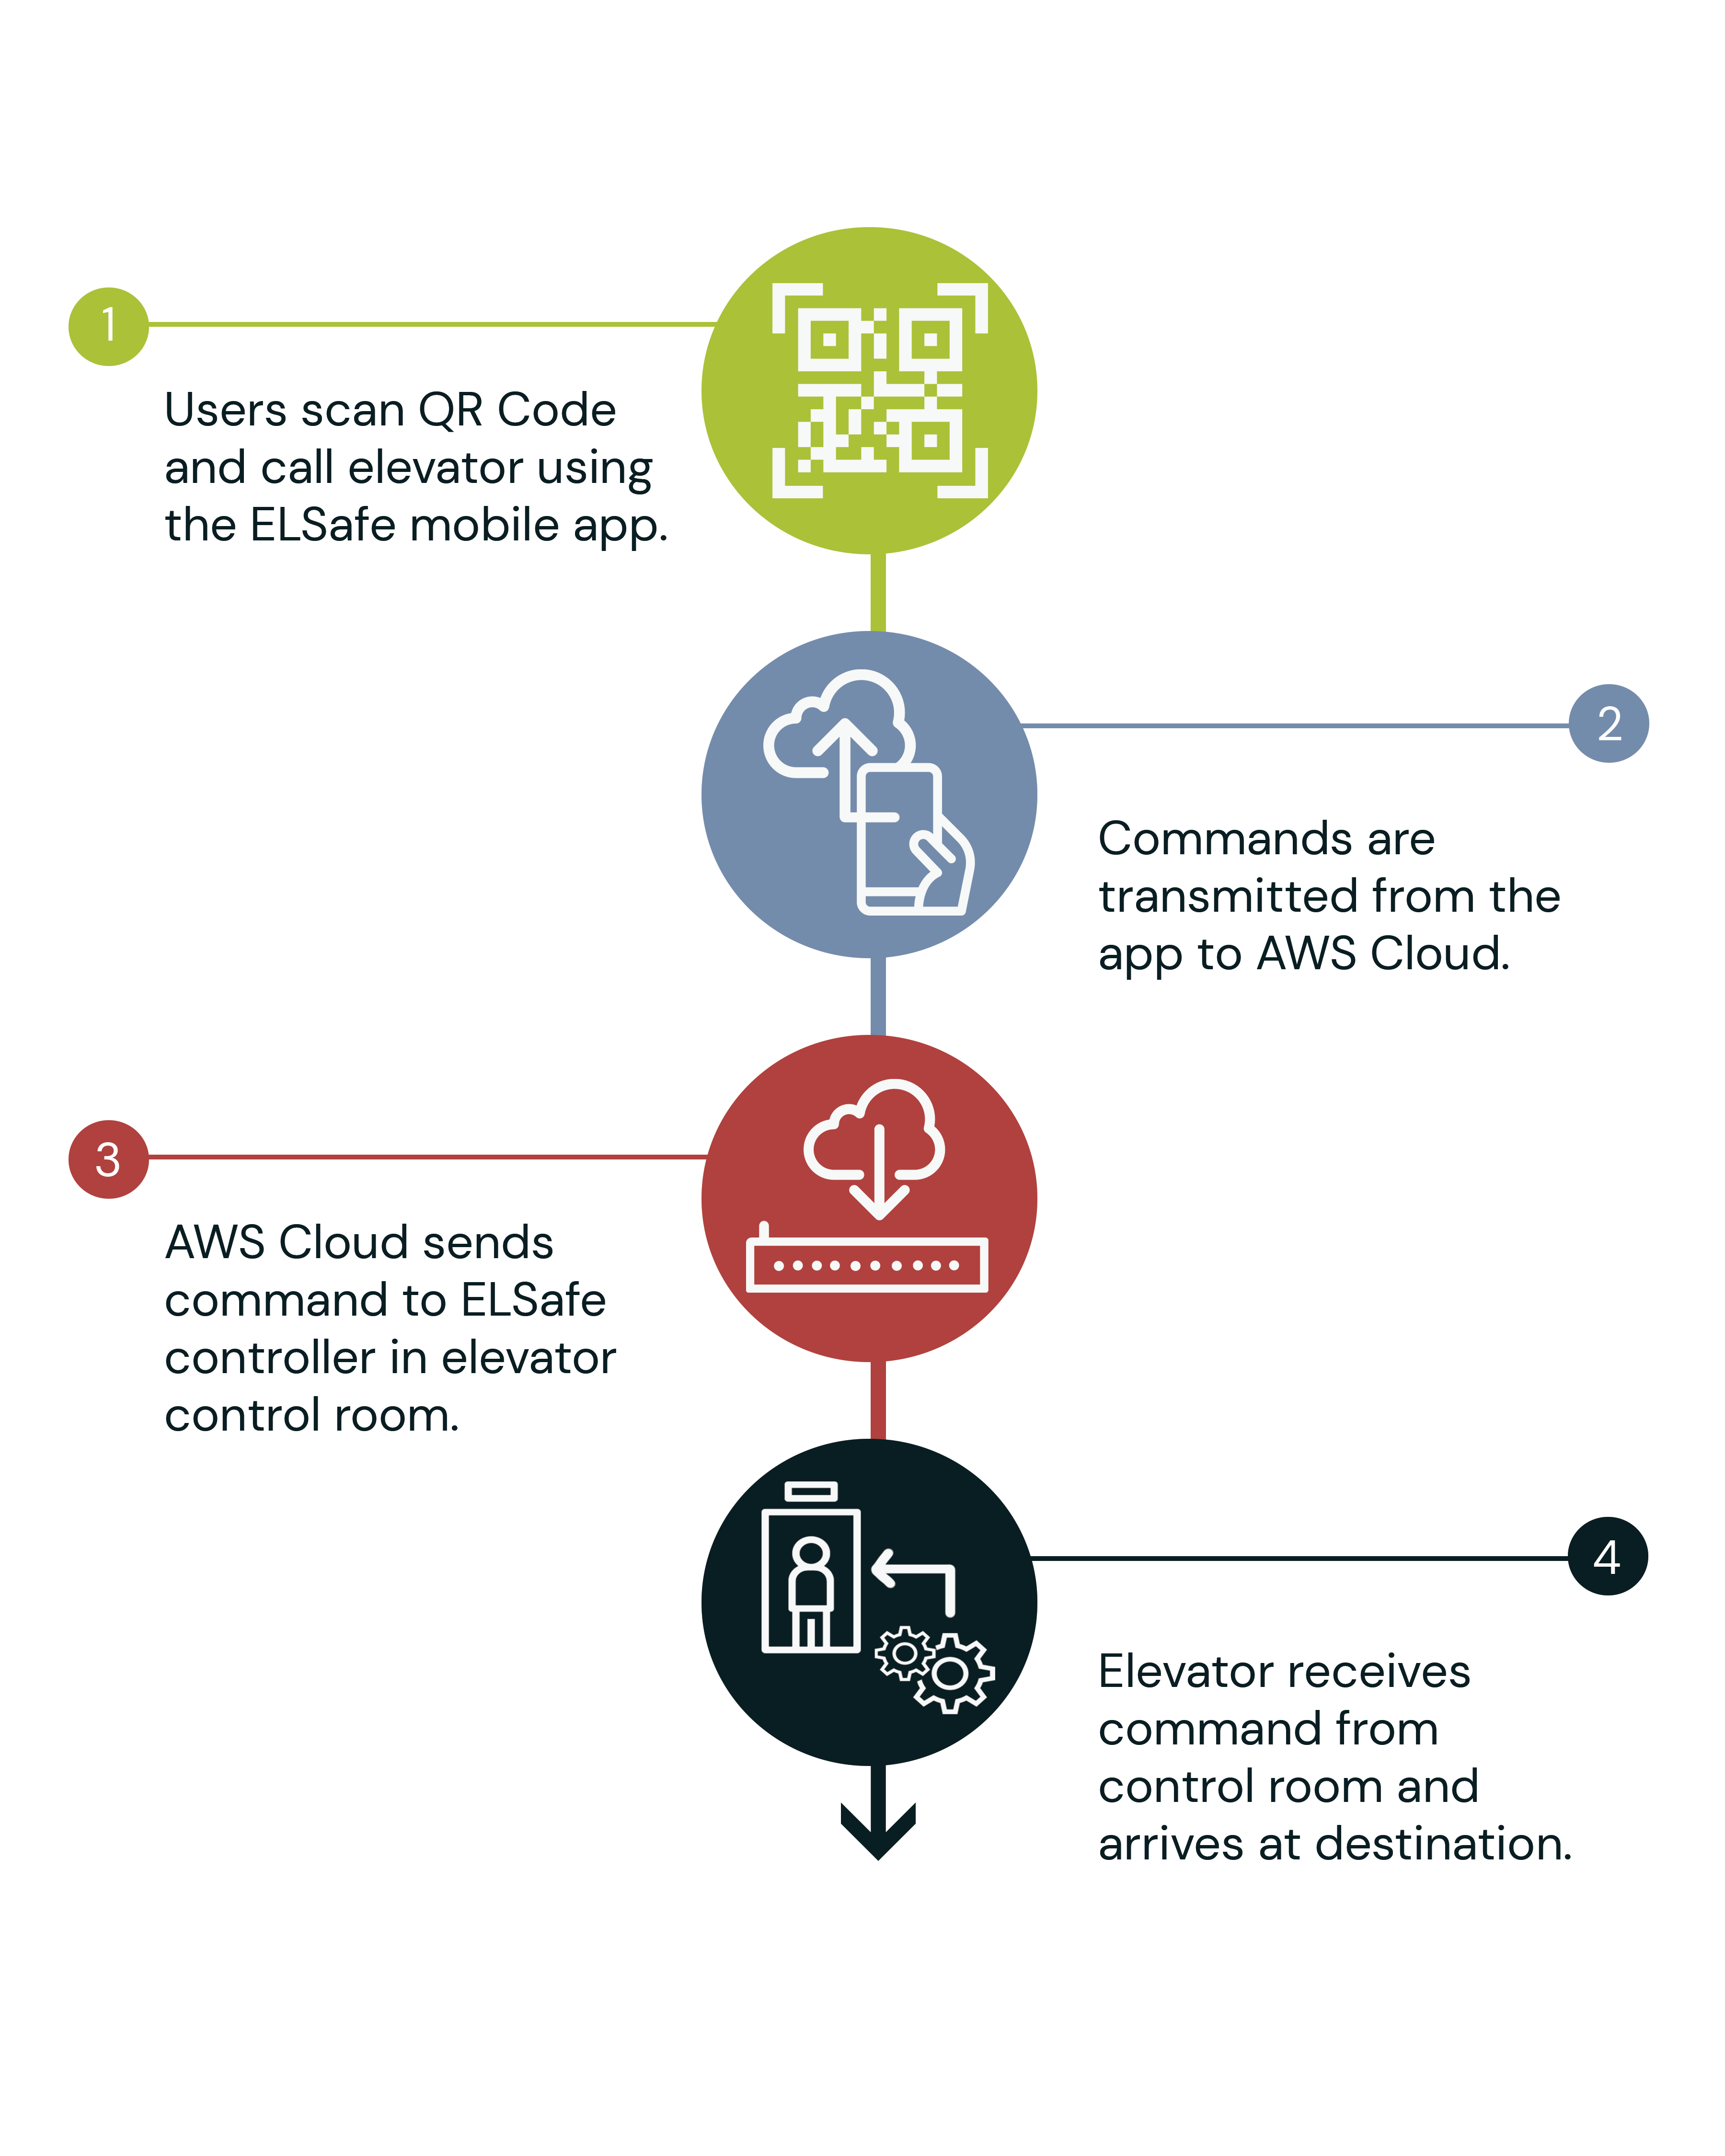 Working of the Internet Based ELSafe controller where QR Code data communicates with the AWS cloud which intern communicates with the elevator